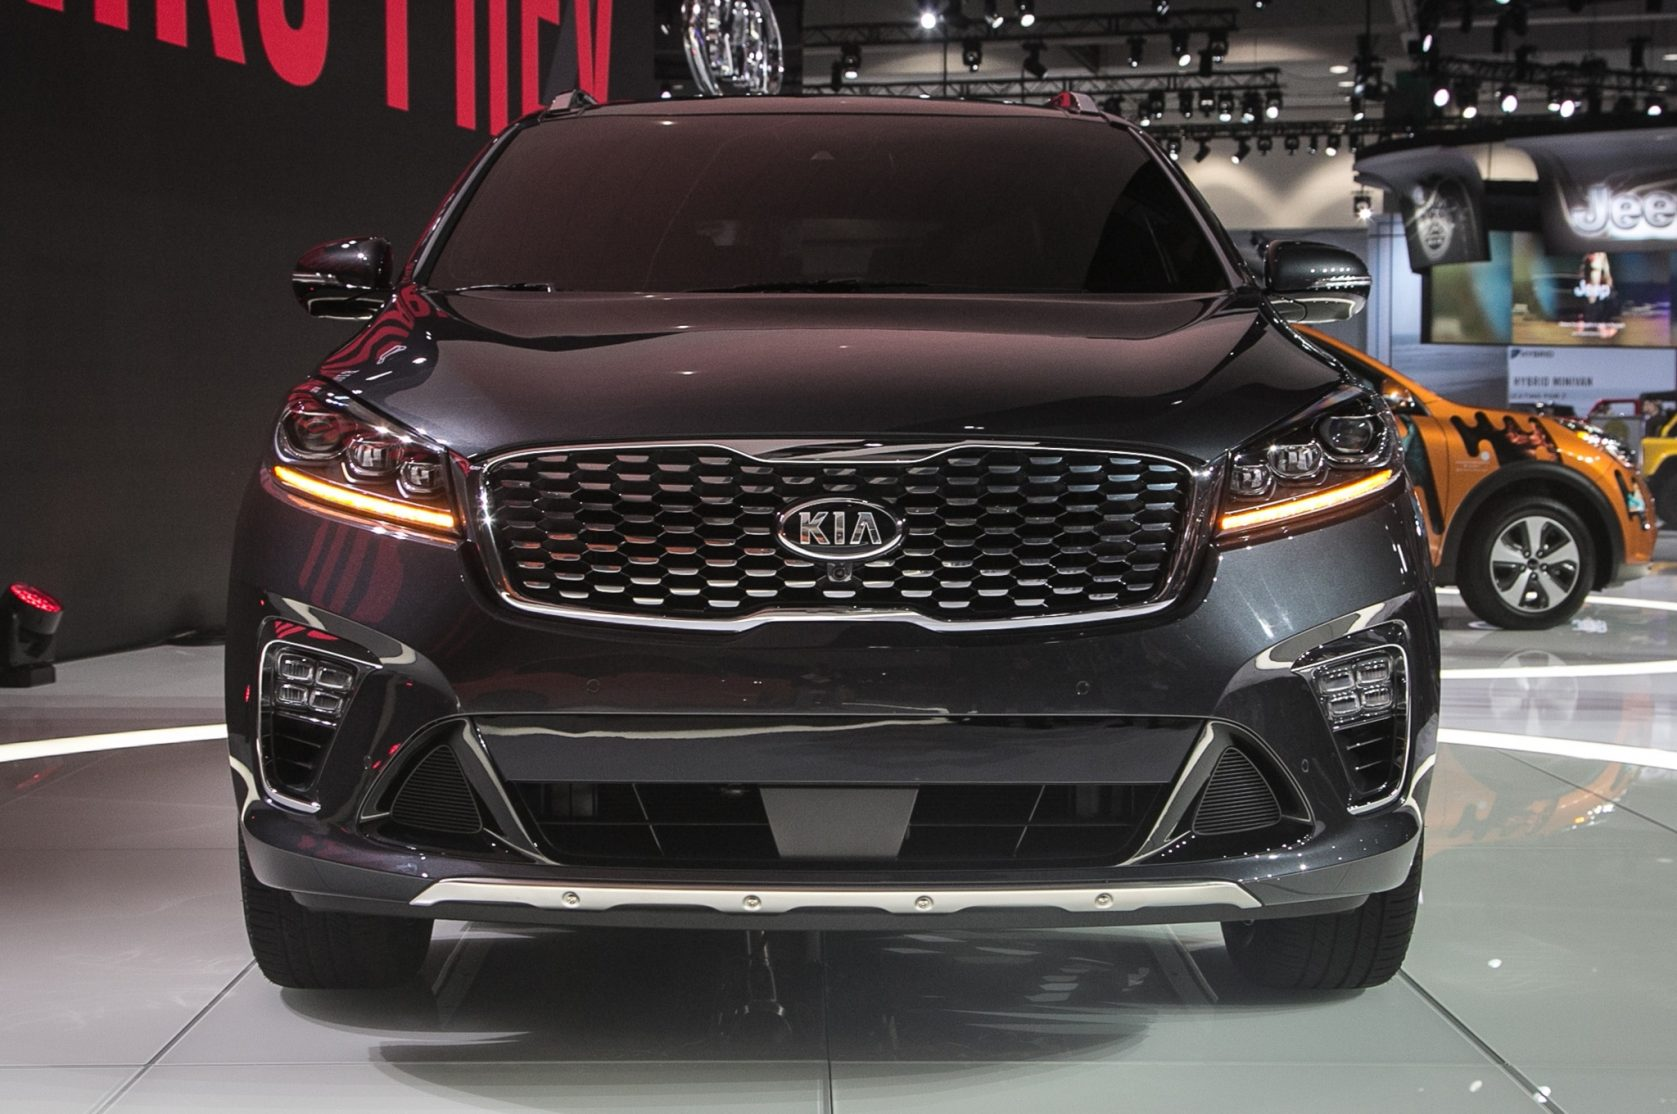 87 New 2020 Kia Carnival Release Date and Concept